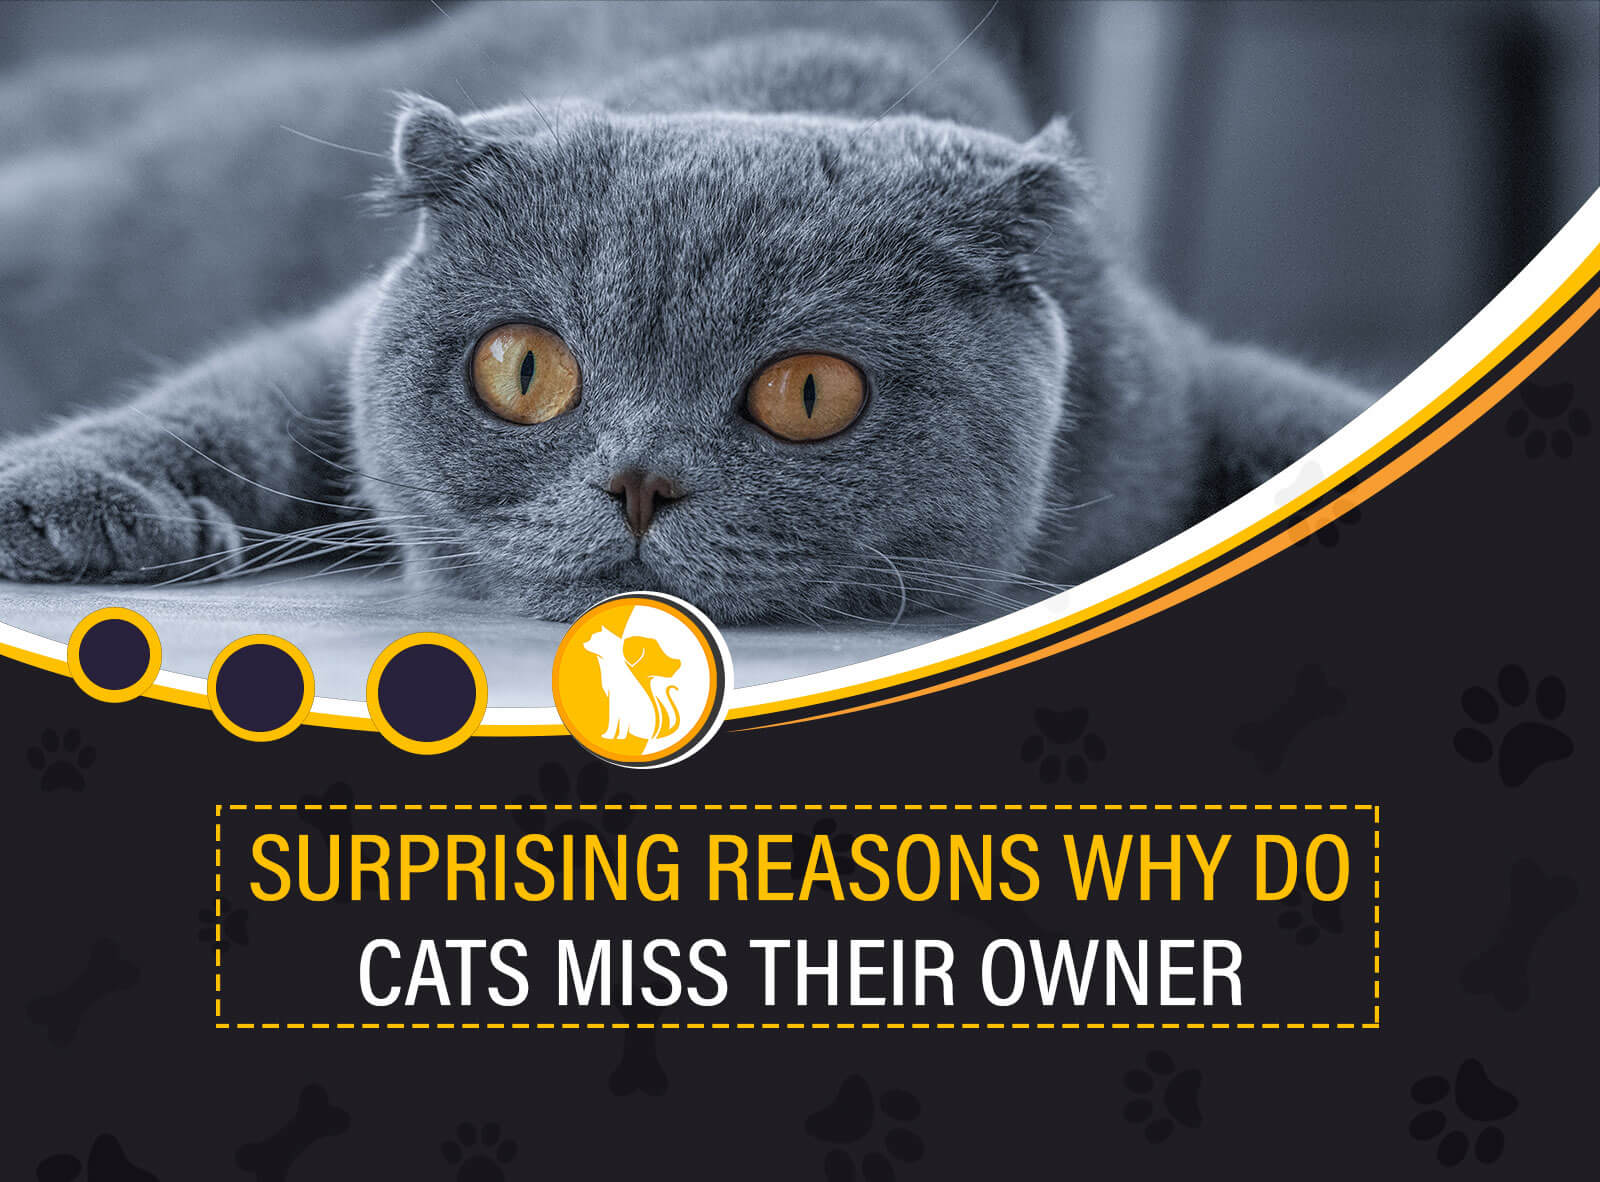 11 Surprising Reasons Why Do Cats Miss Their Owners